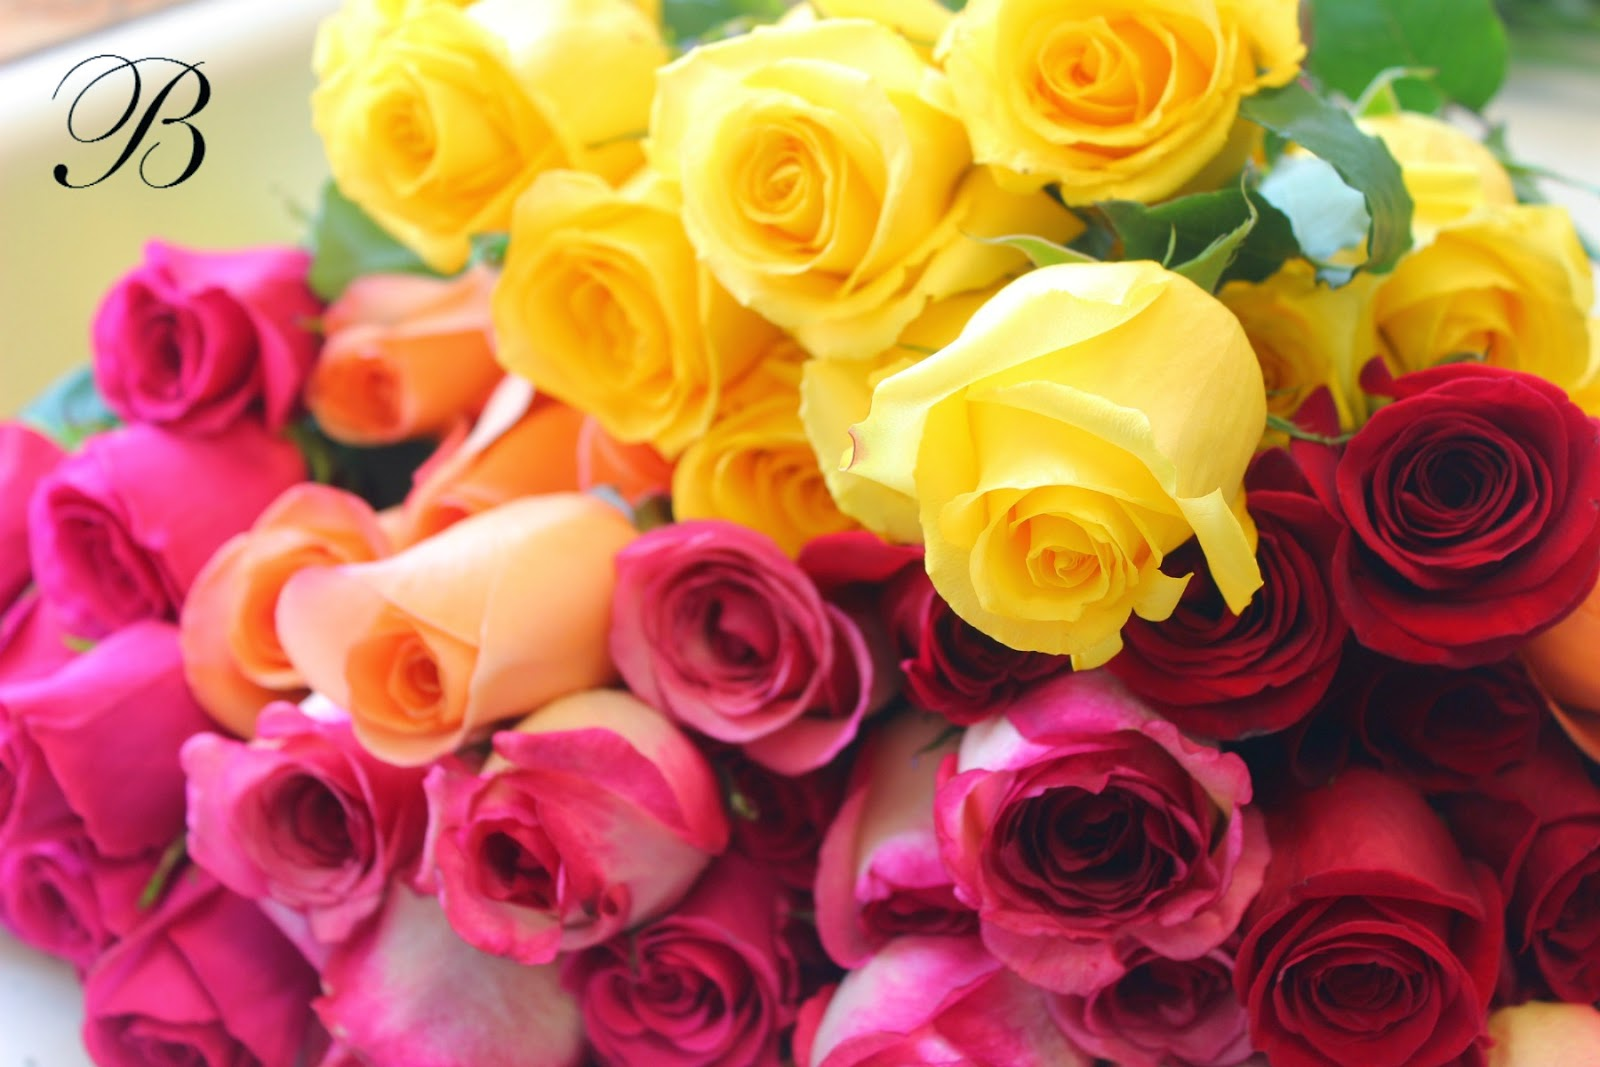 Bank Of Flowers Roses Are Redd Lavender And Yellow And Pink And